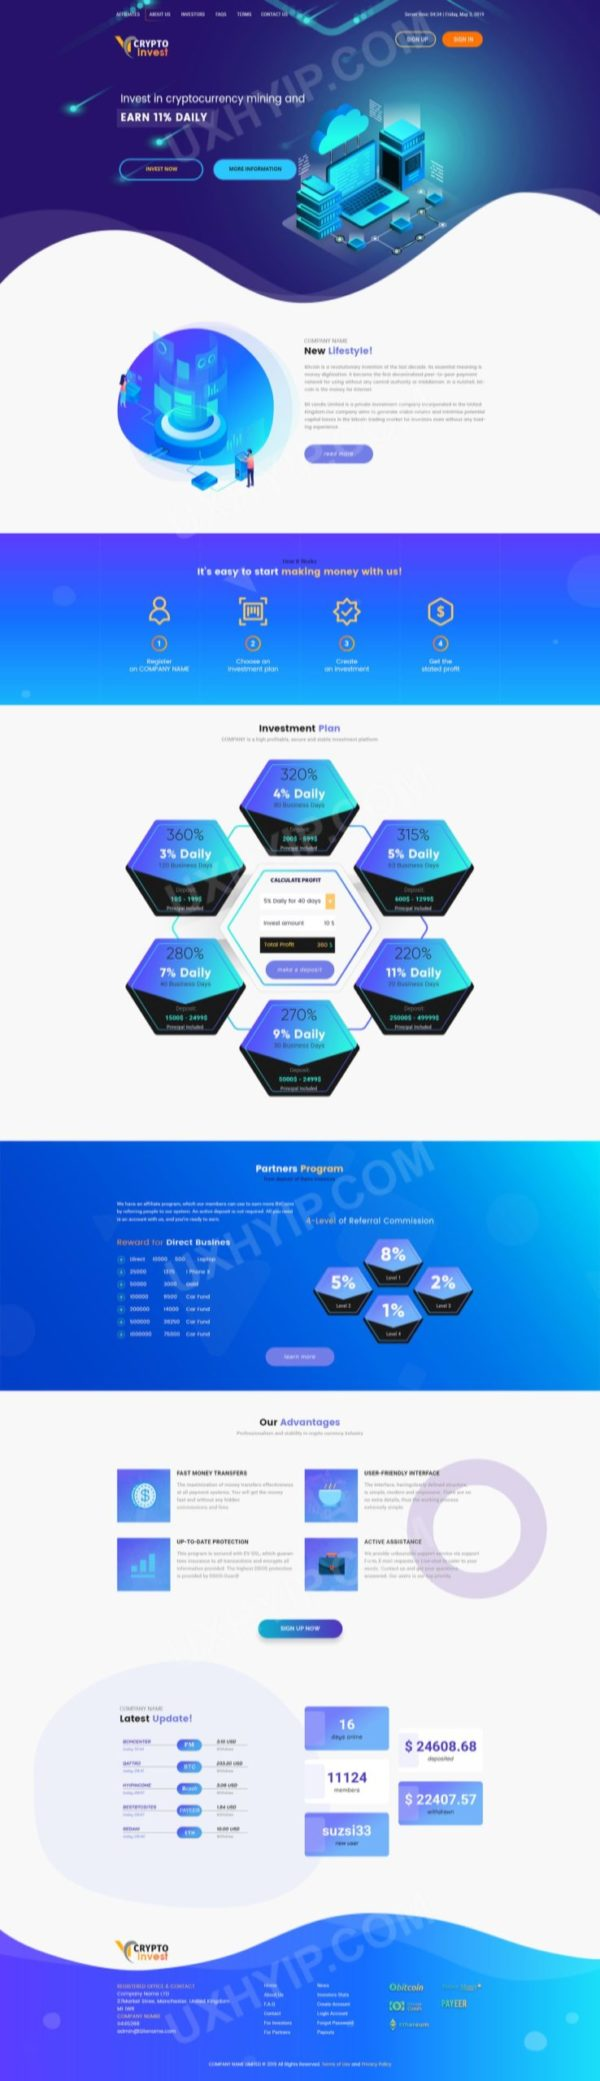 HYIP Template - Investment Business Template CryptoInvest ID 144